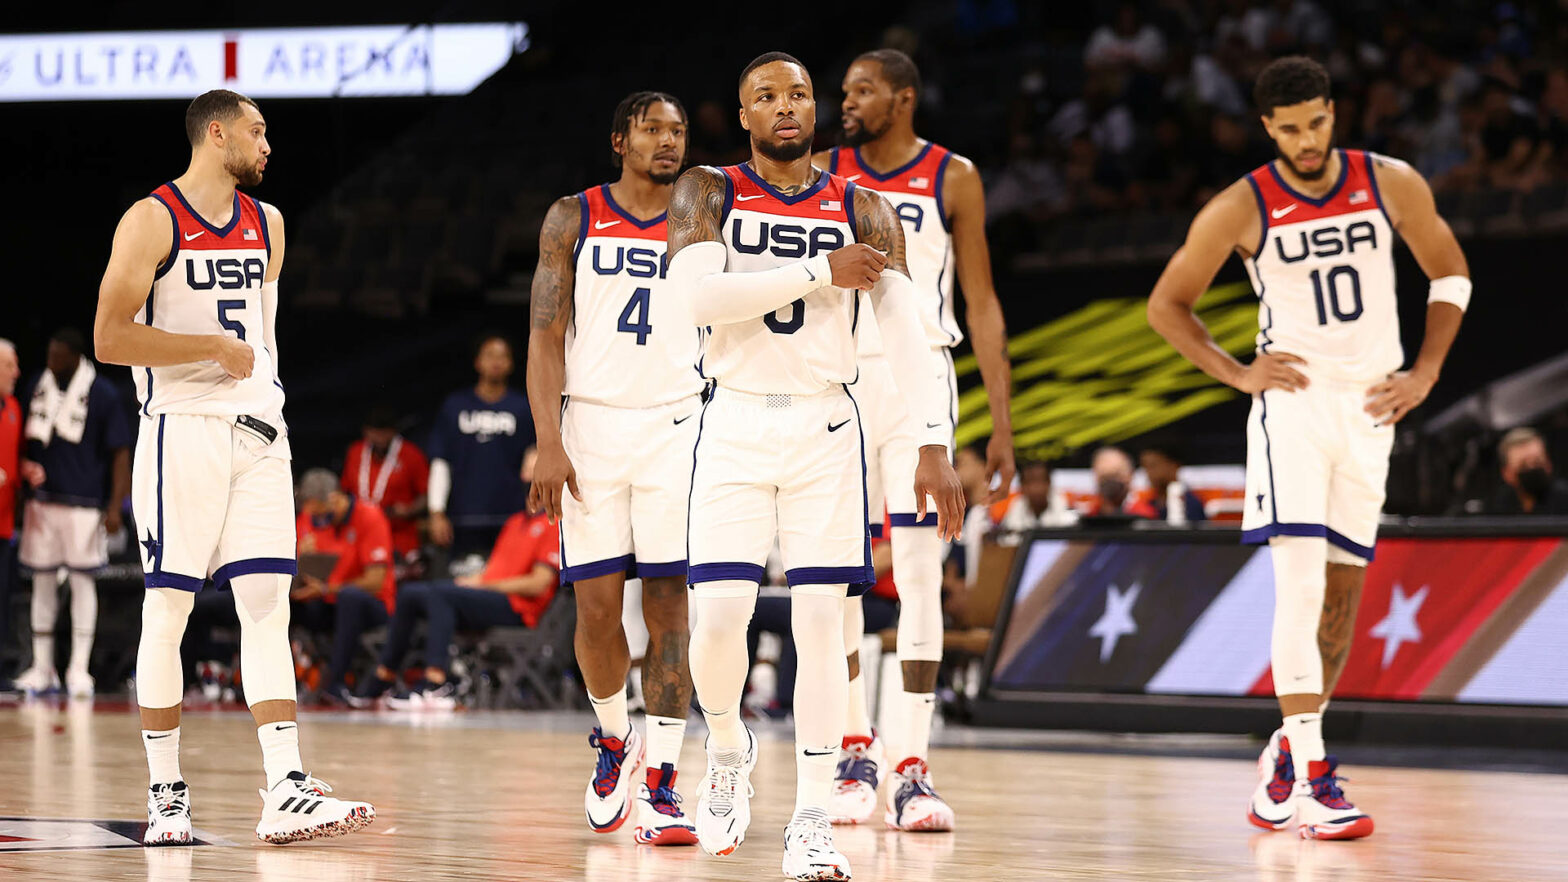 USA Basketball: Full schedule for Tokyo Olympics & exhibitions | NBA.com